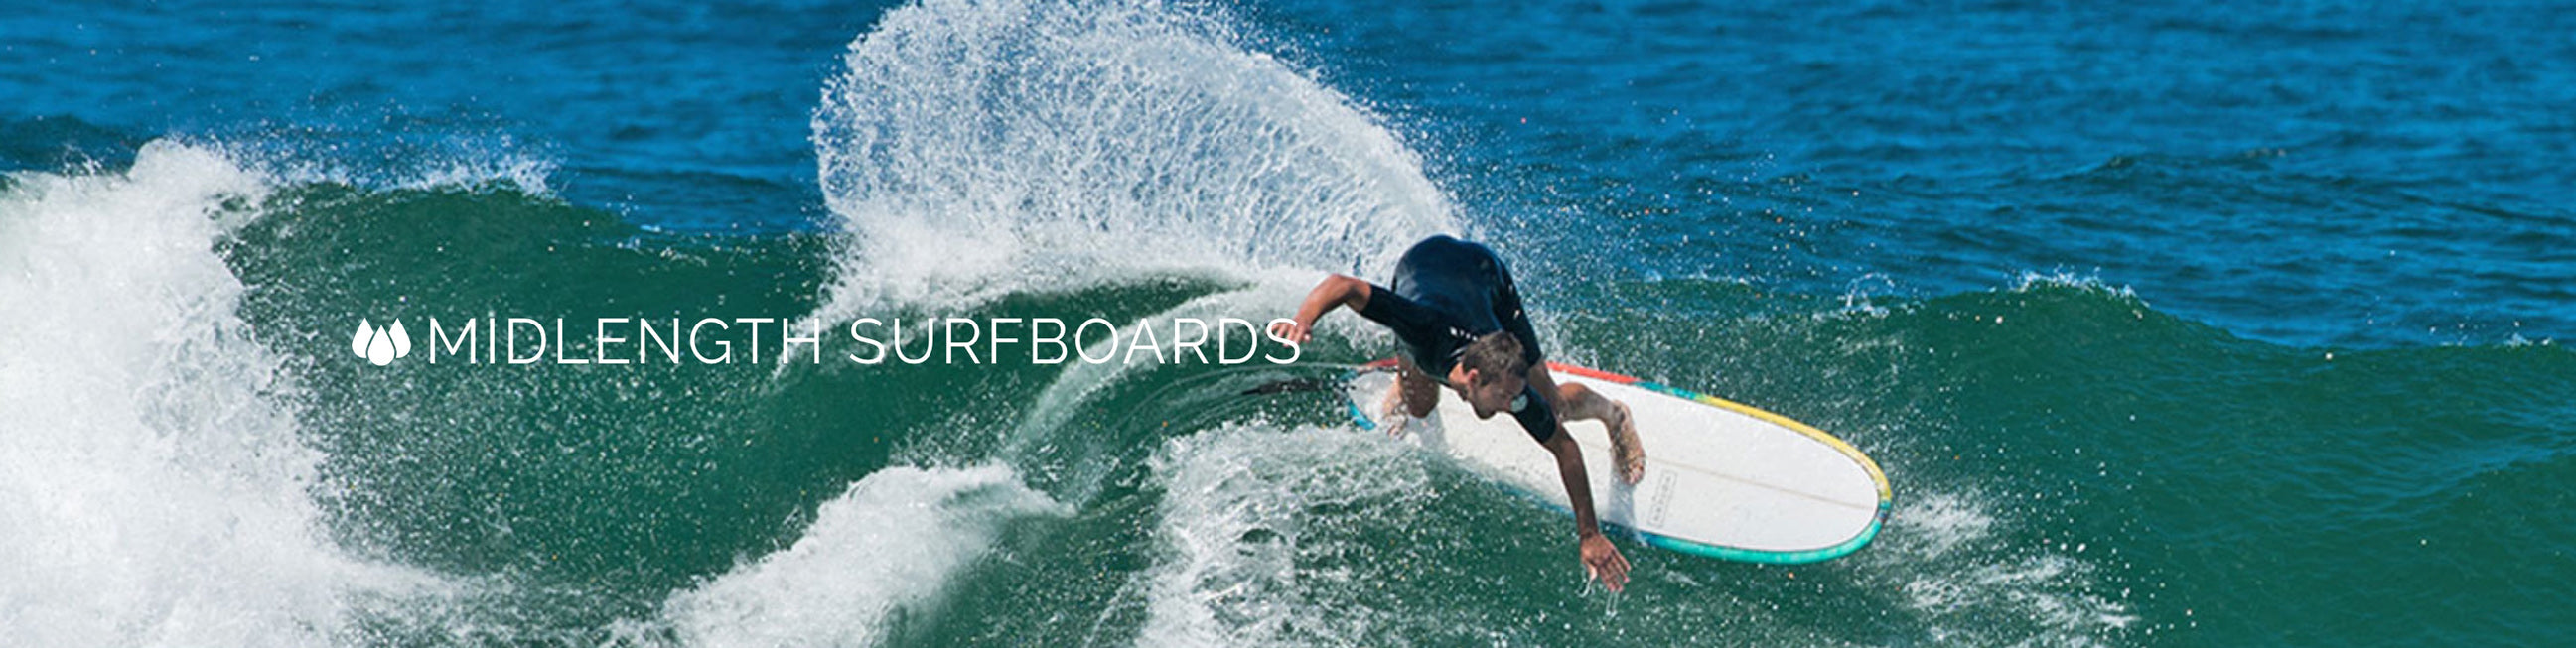 Midlength Surfboards For Sale LiquidWild